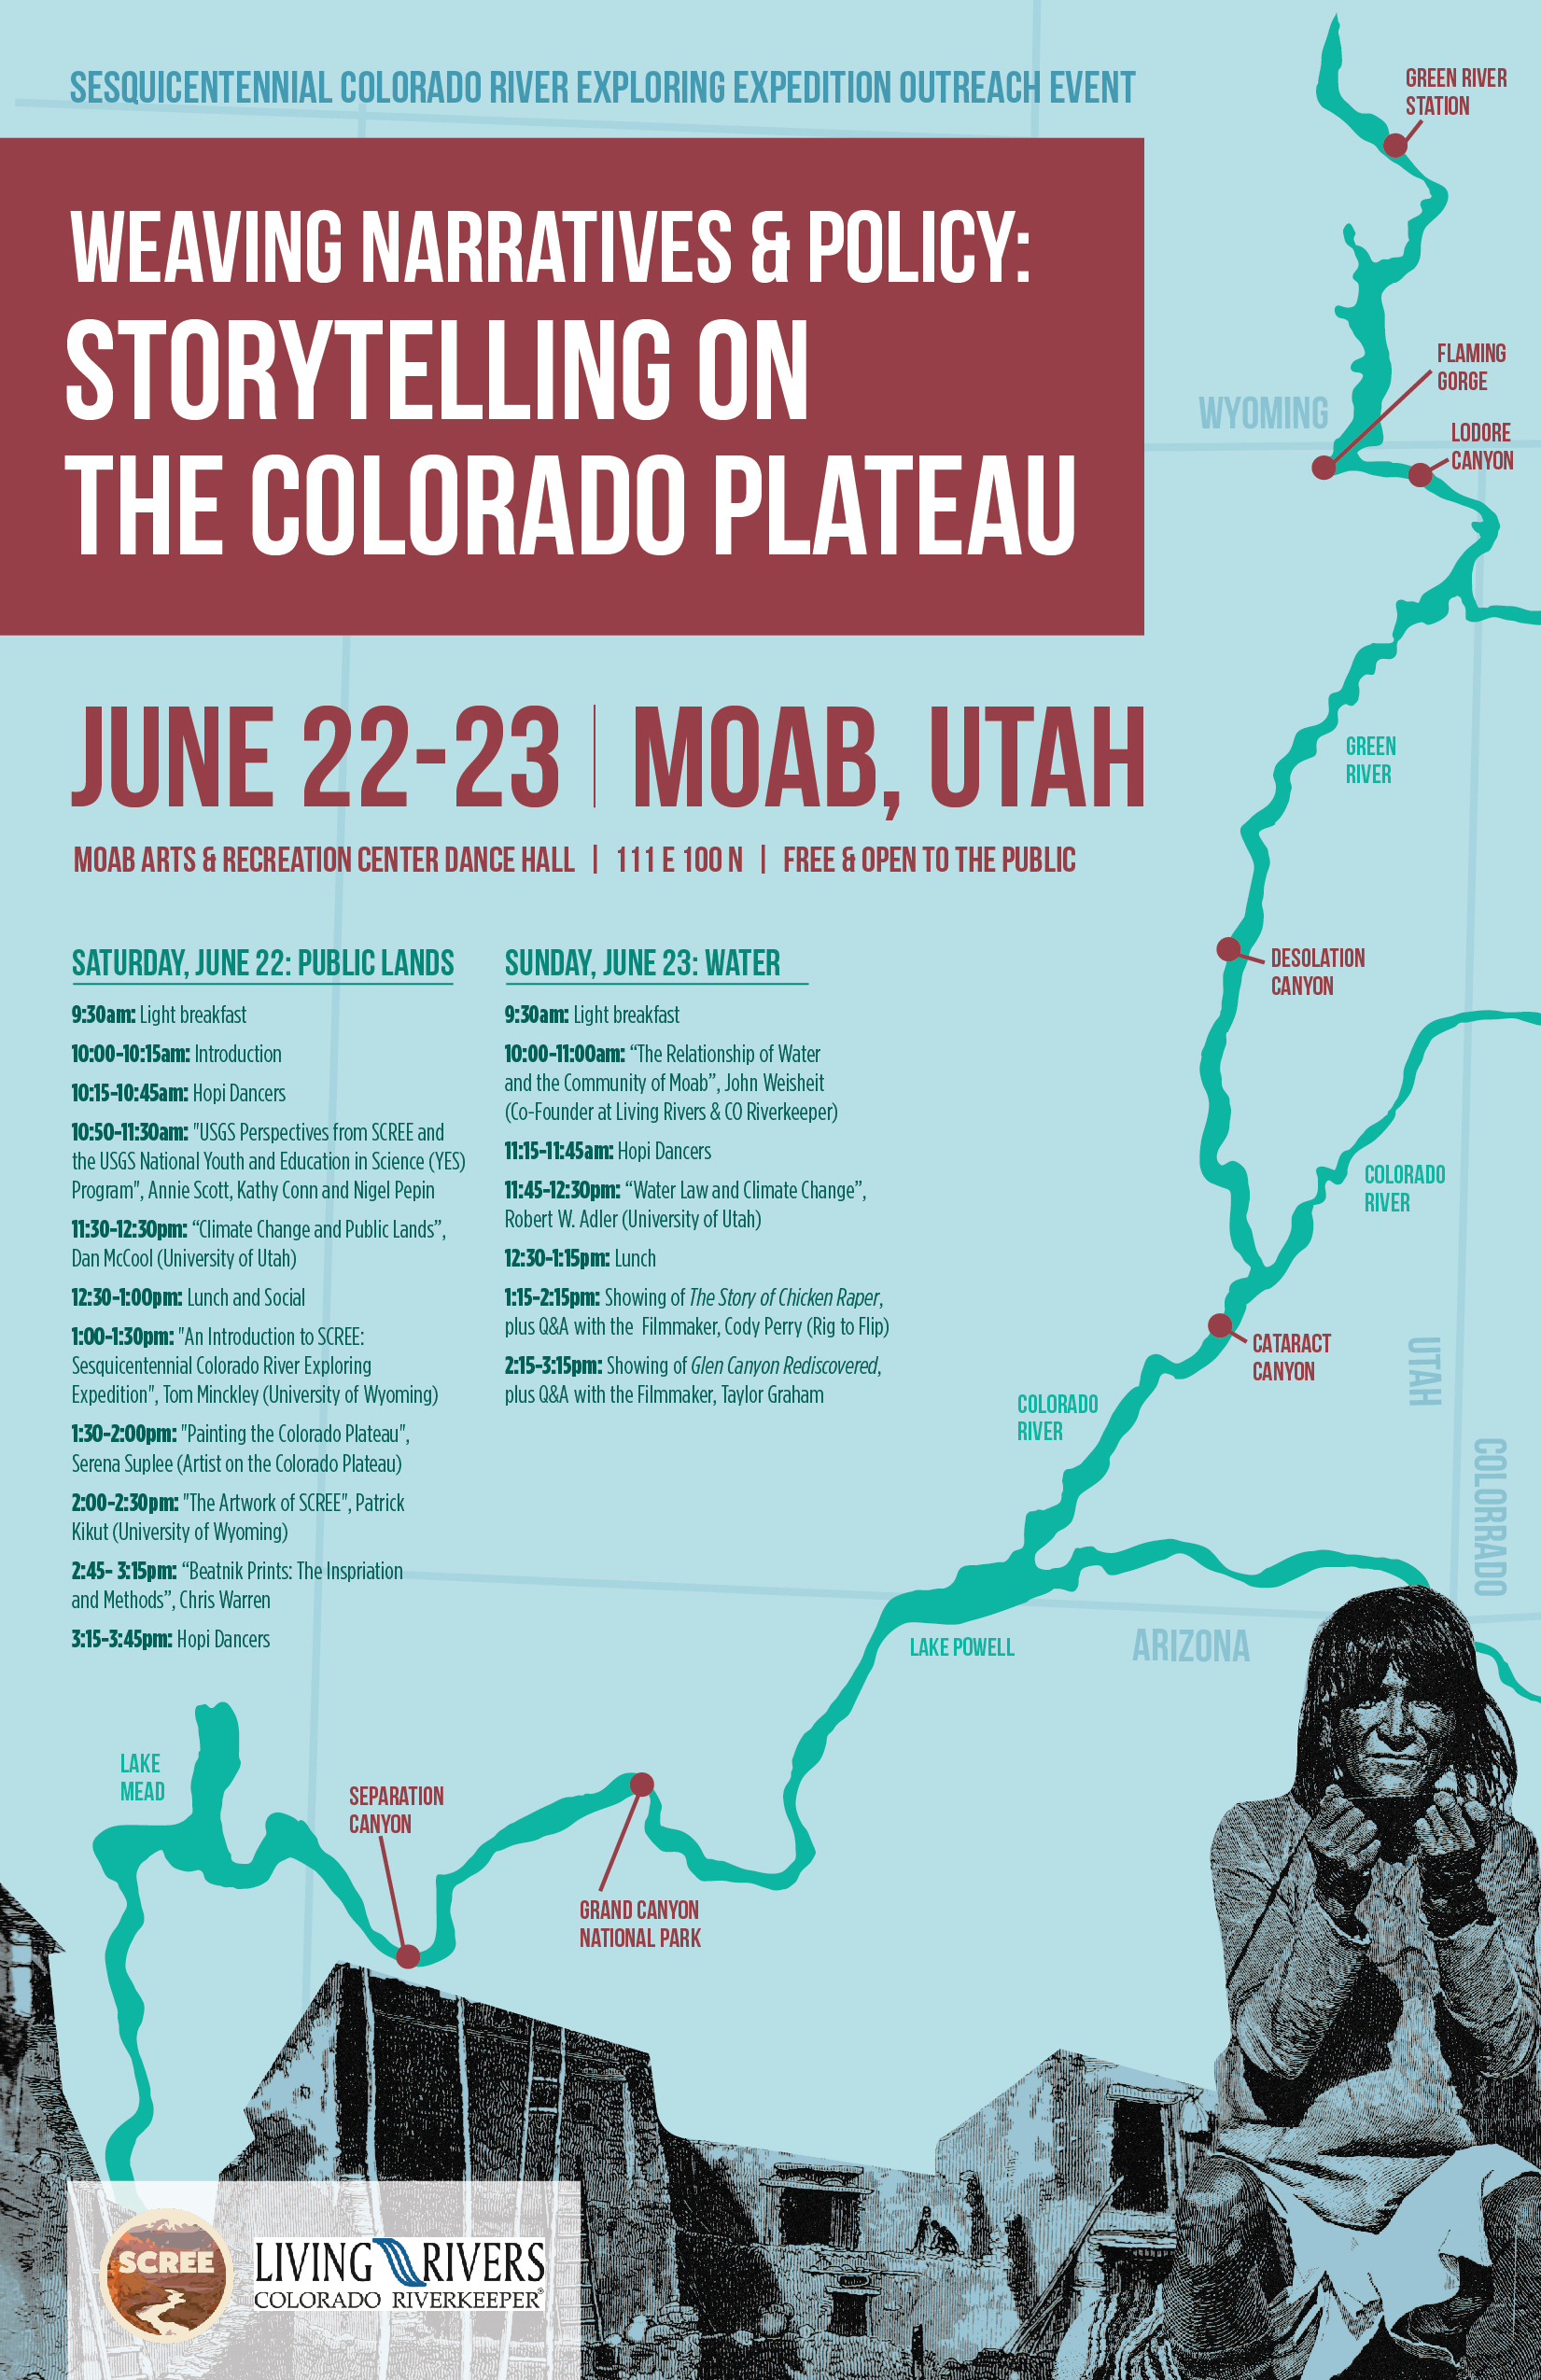 """""""   River expedition stops in Moab to talk about public lands, water issues   """"  authored by Sharon Sullivan for Moab Sun News, June 20, 2019"""